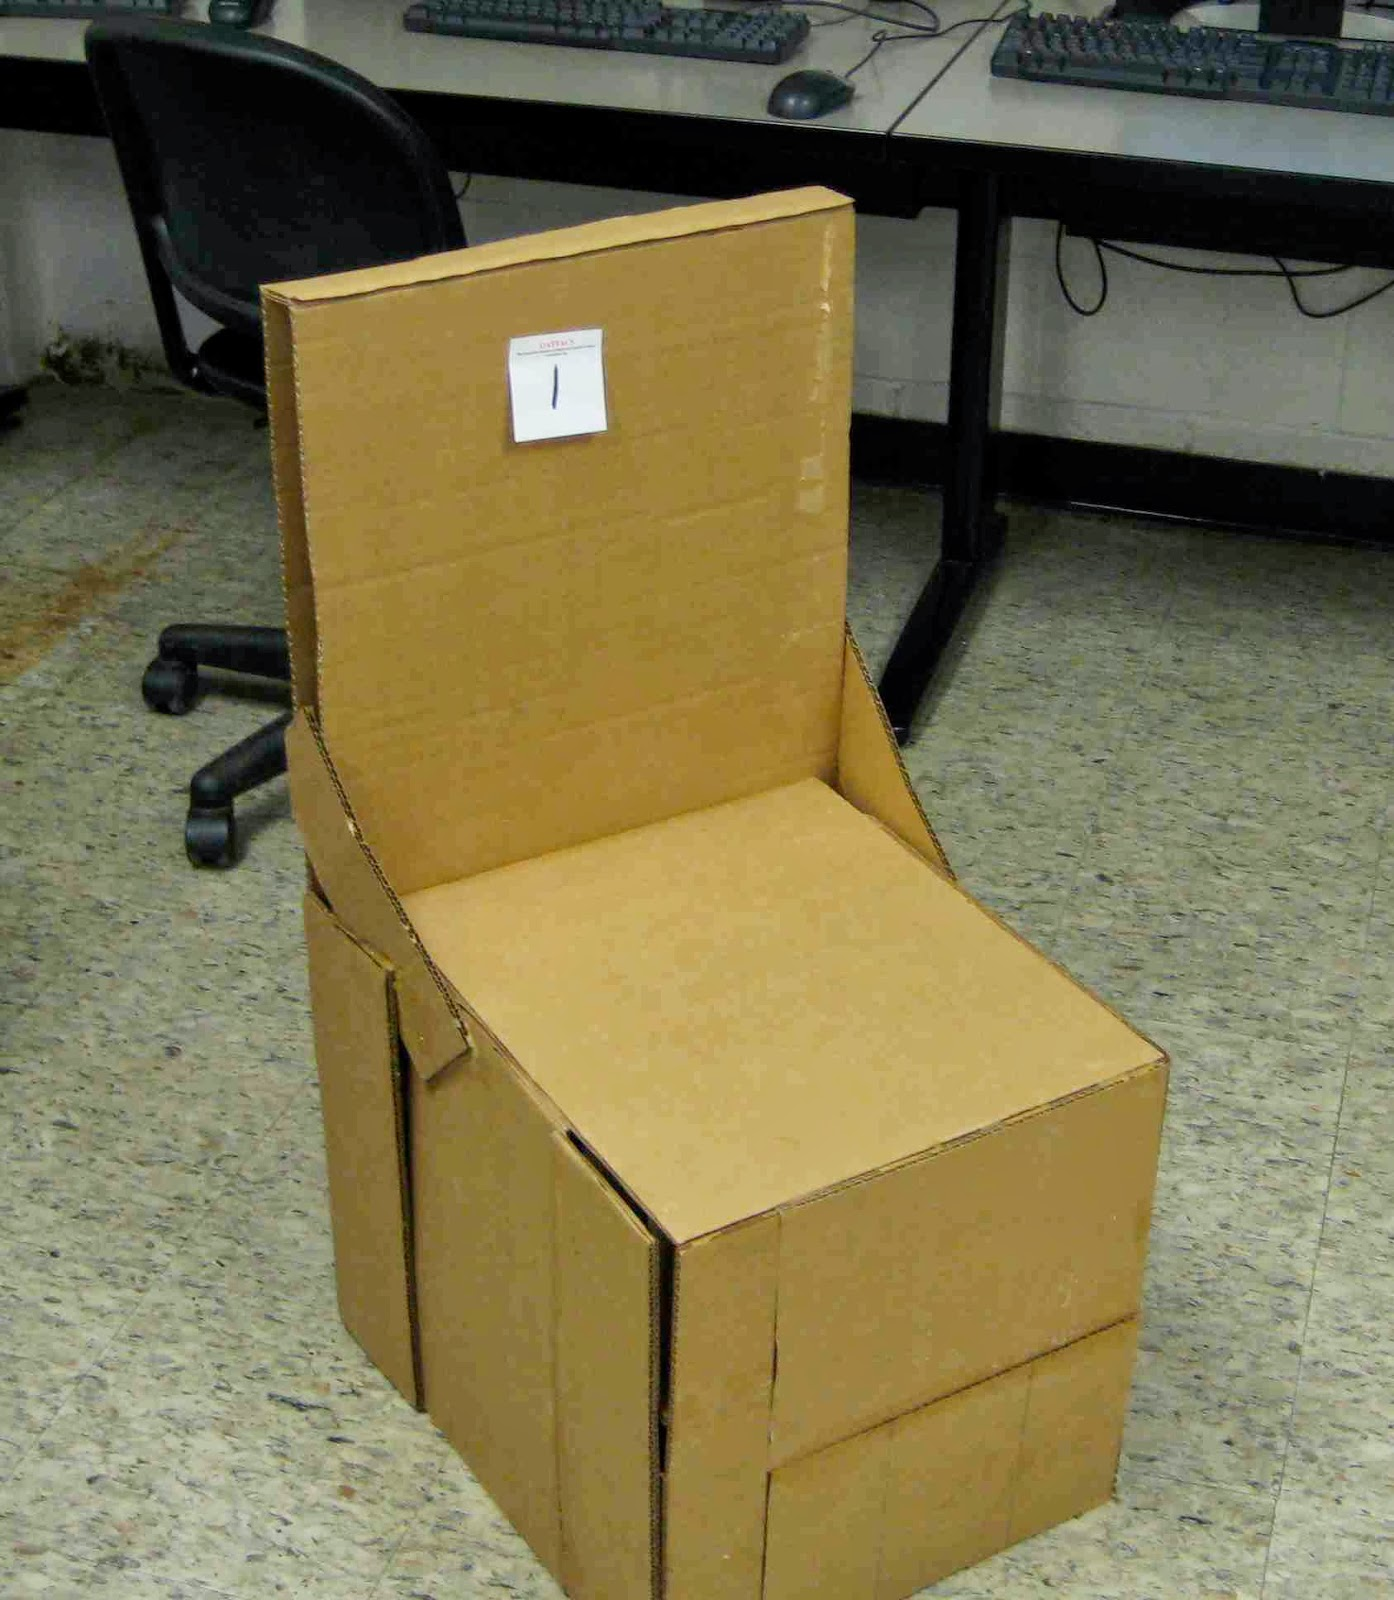 Cardboard chair design no glue - Cardboard Chair Blog 1